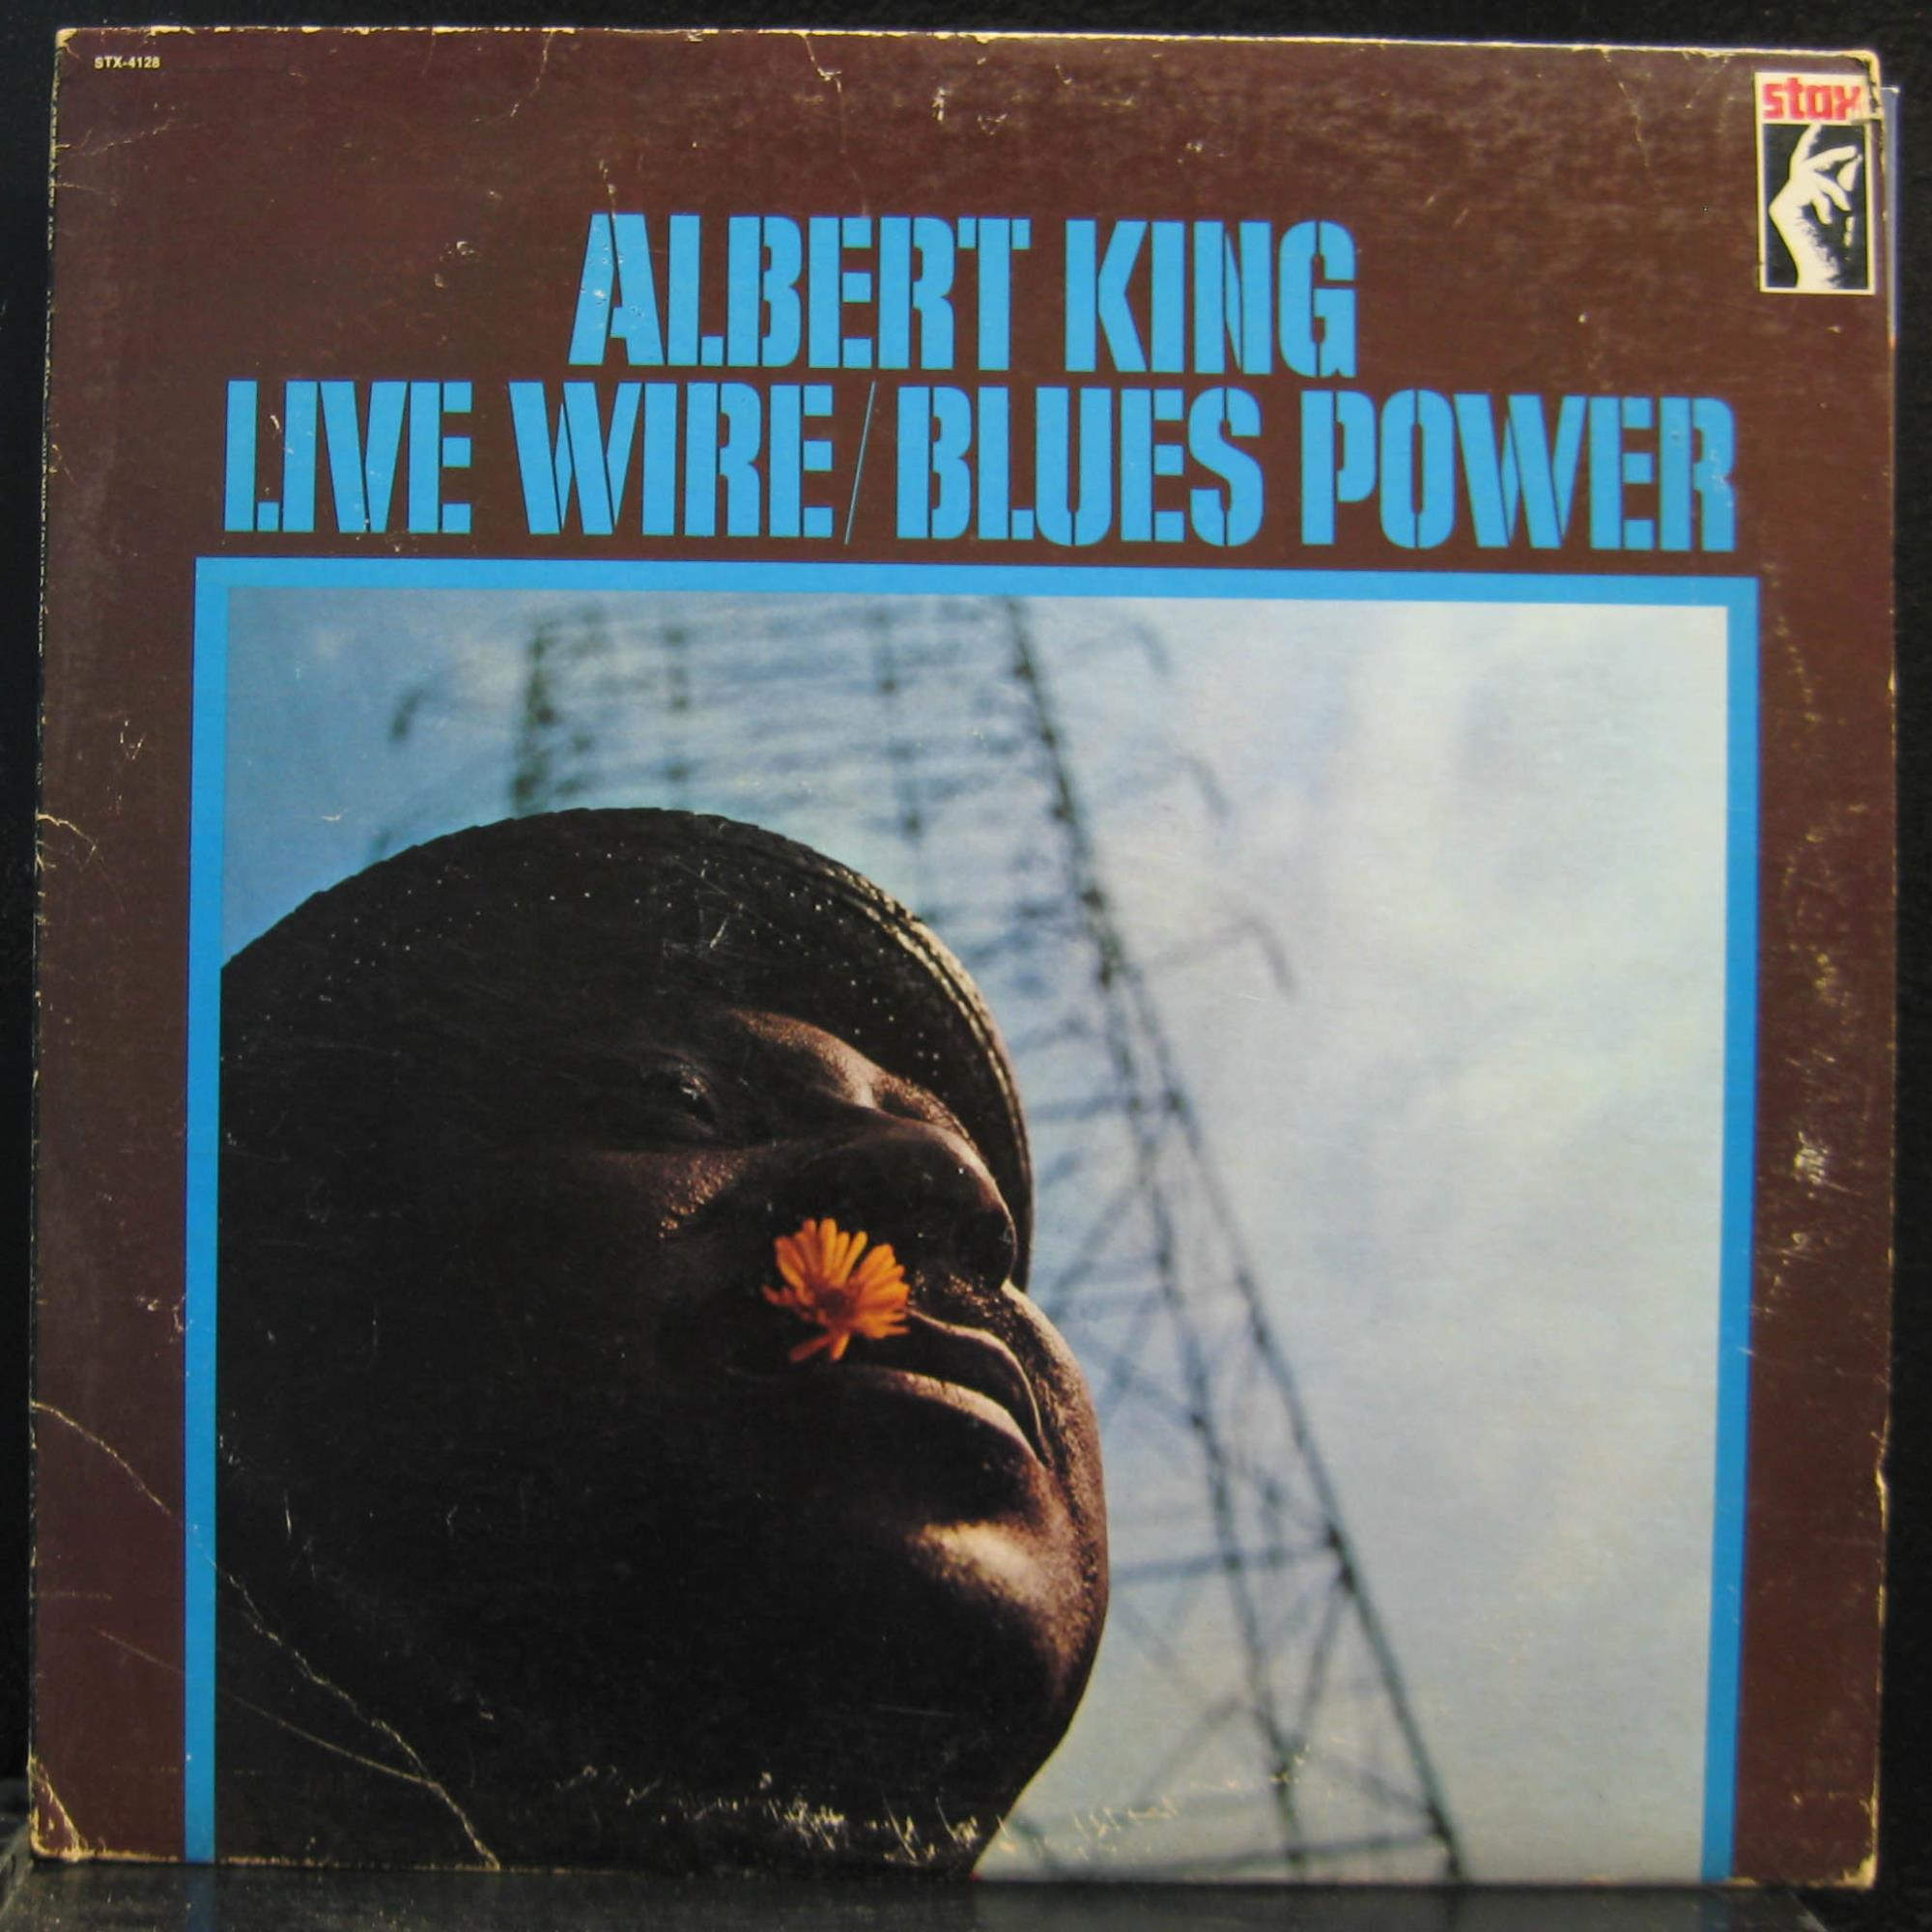 Live wire / blues power by Albert King, LP with shugarecords - Ref ...